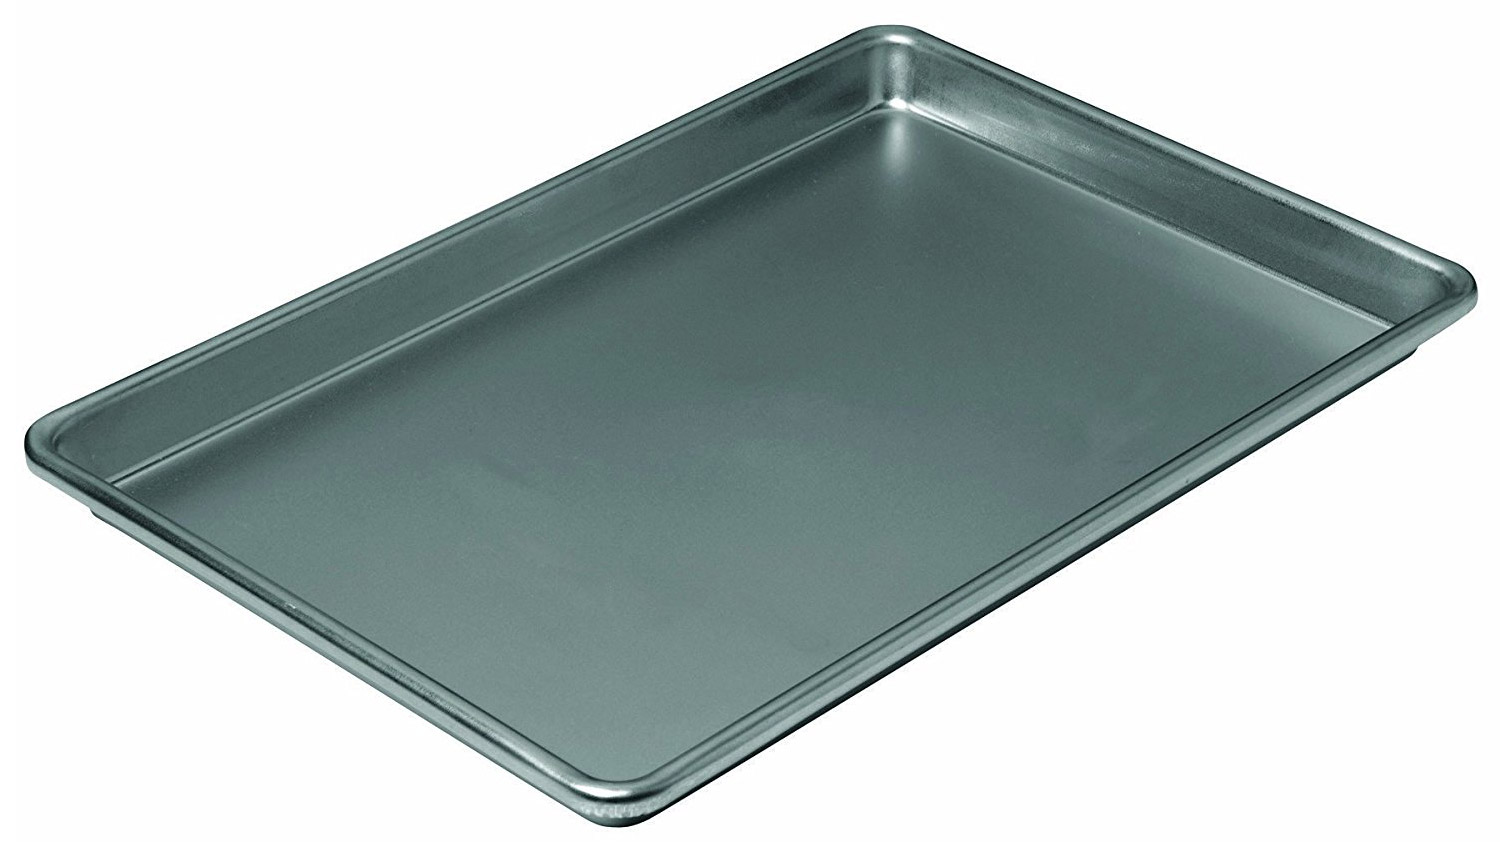 Cookie Sheet Dimensions The Best Sheets Our Reviews Food Wine